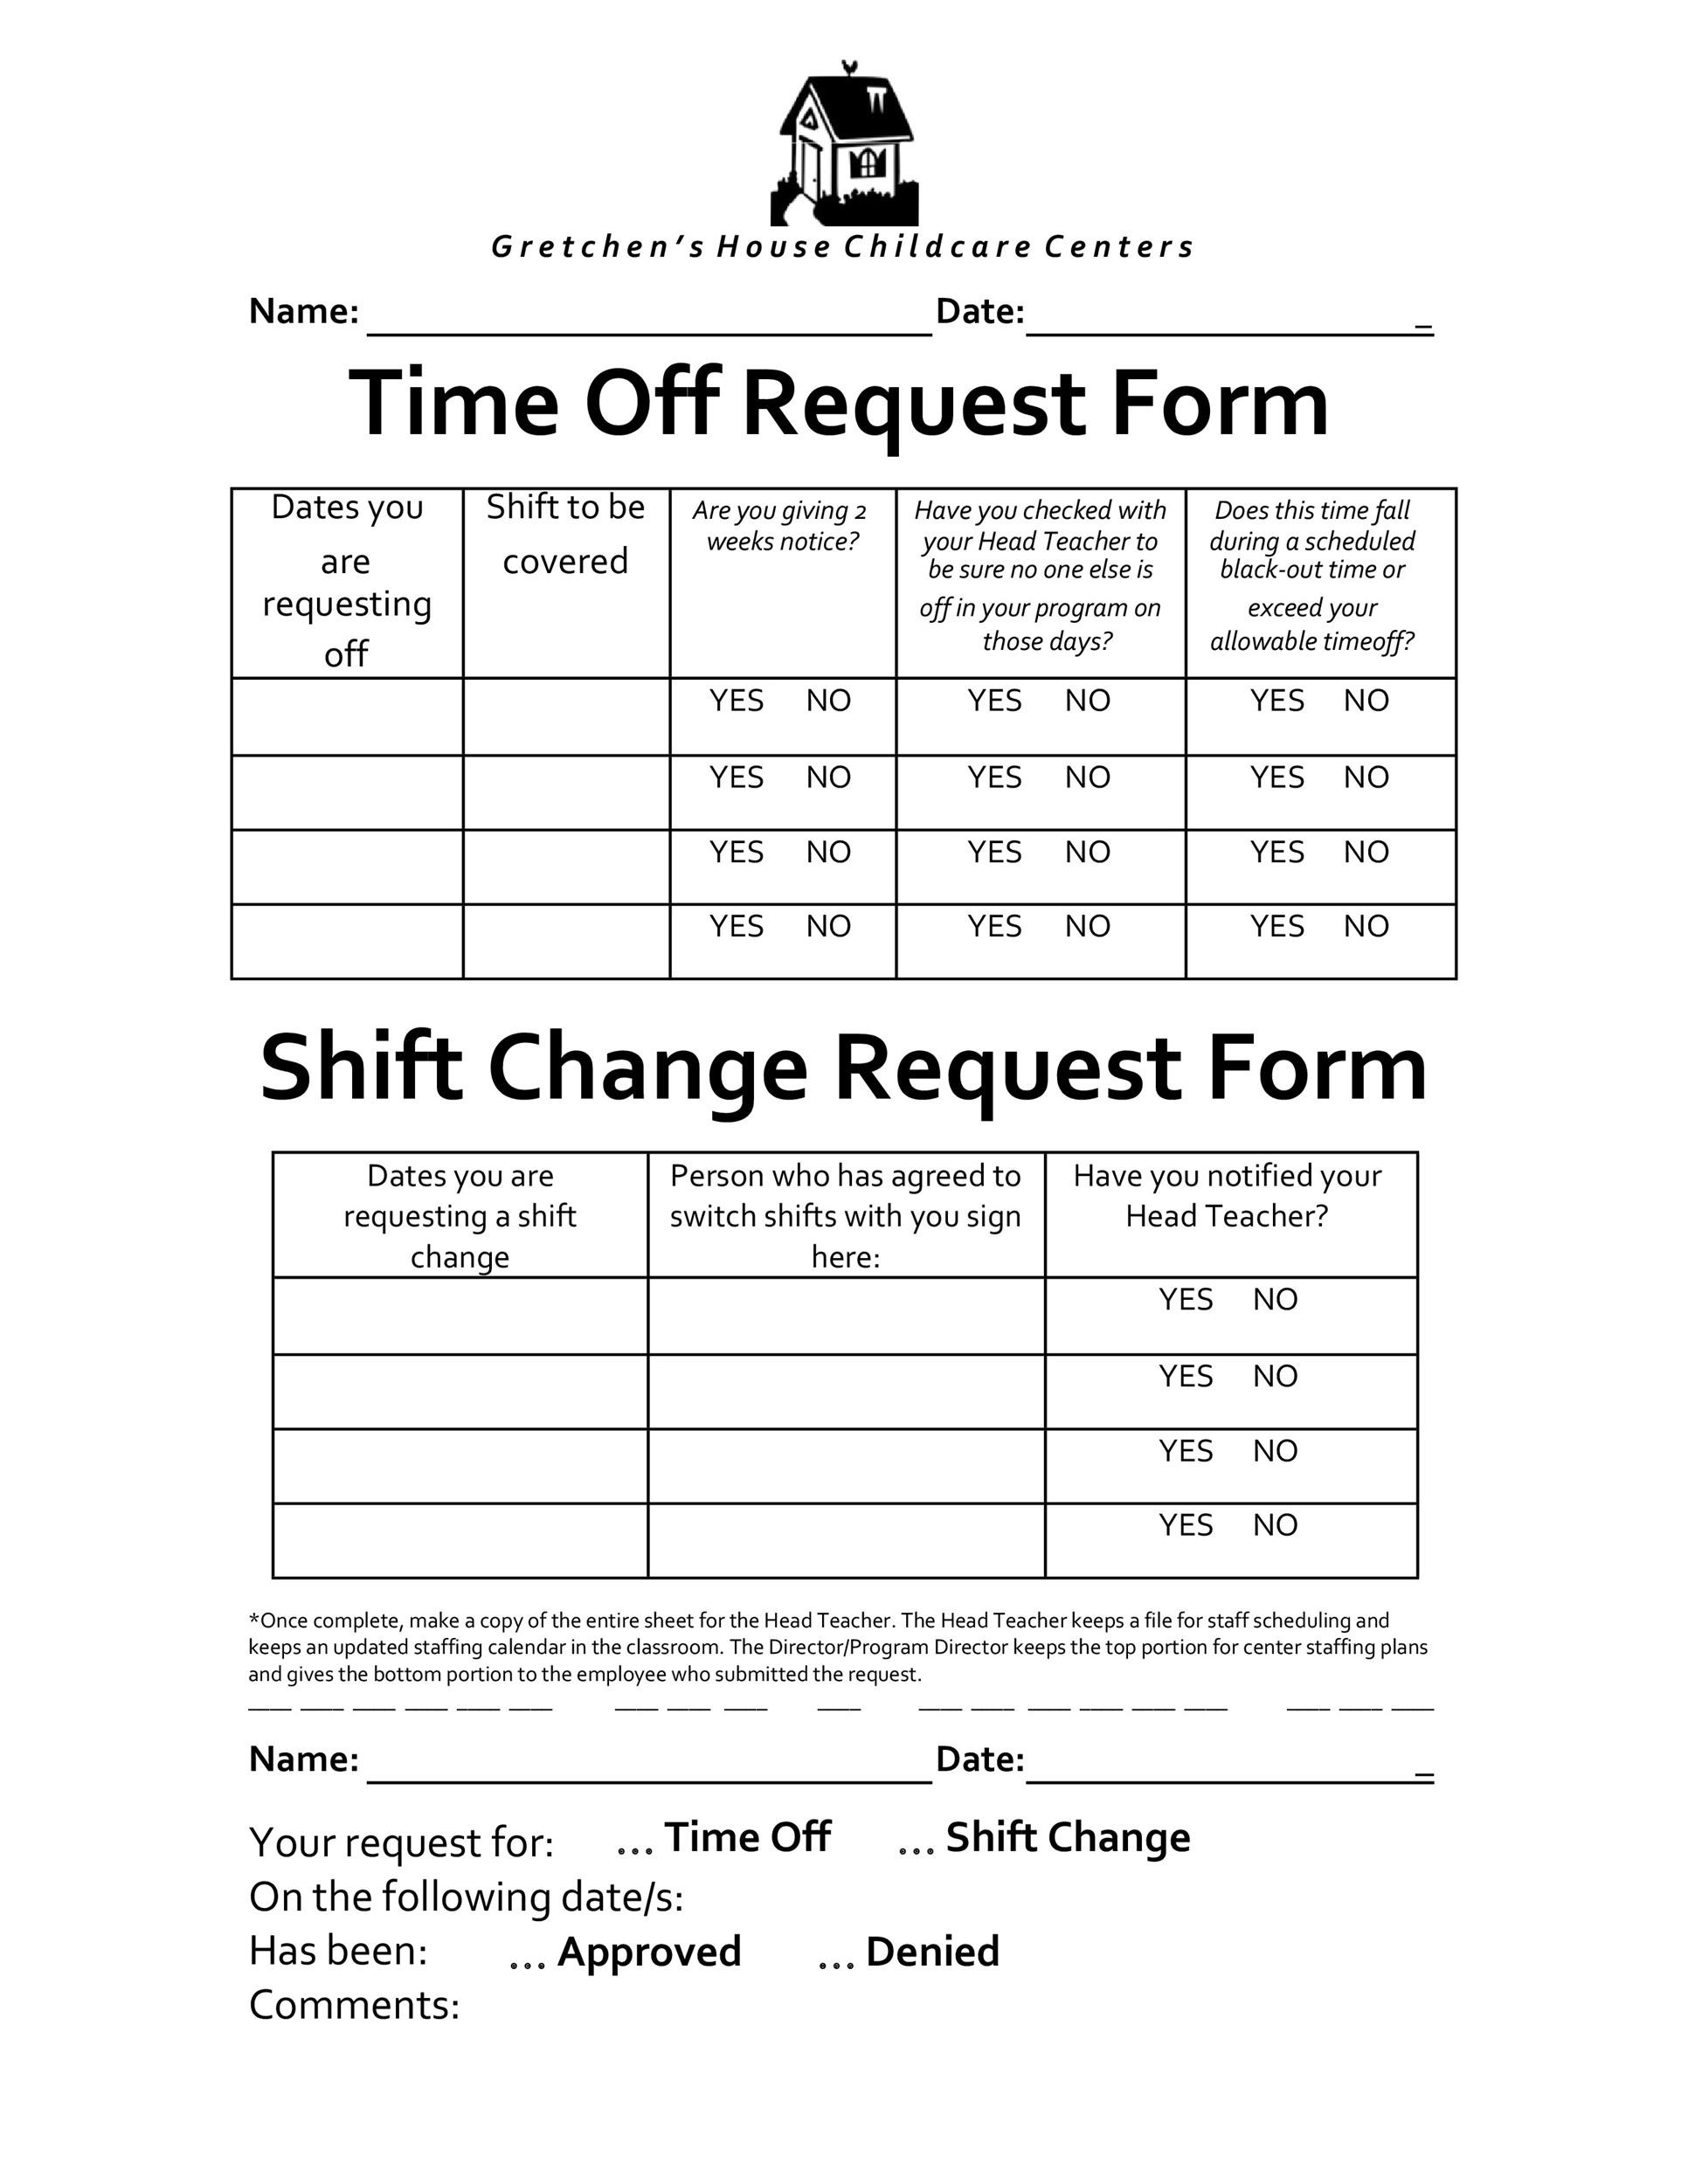 Free time off request form template 37